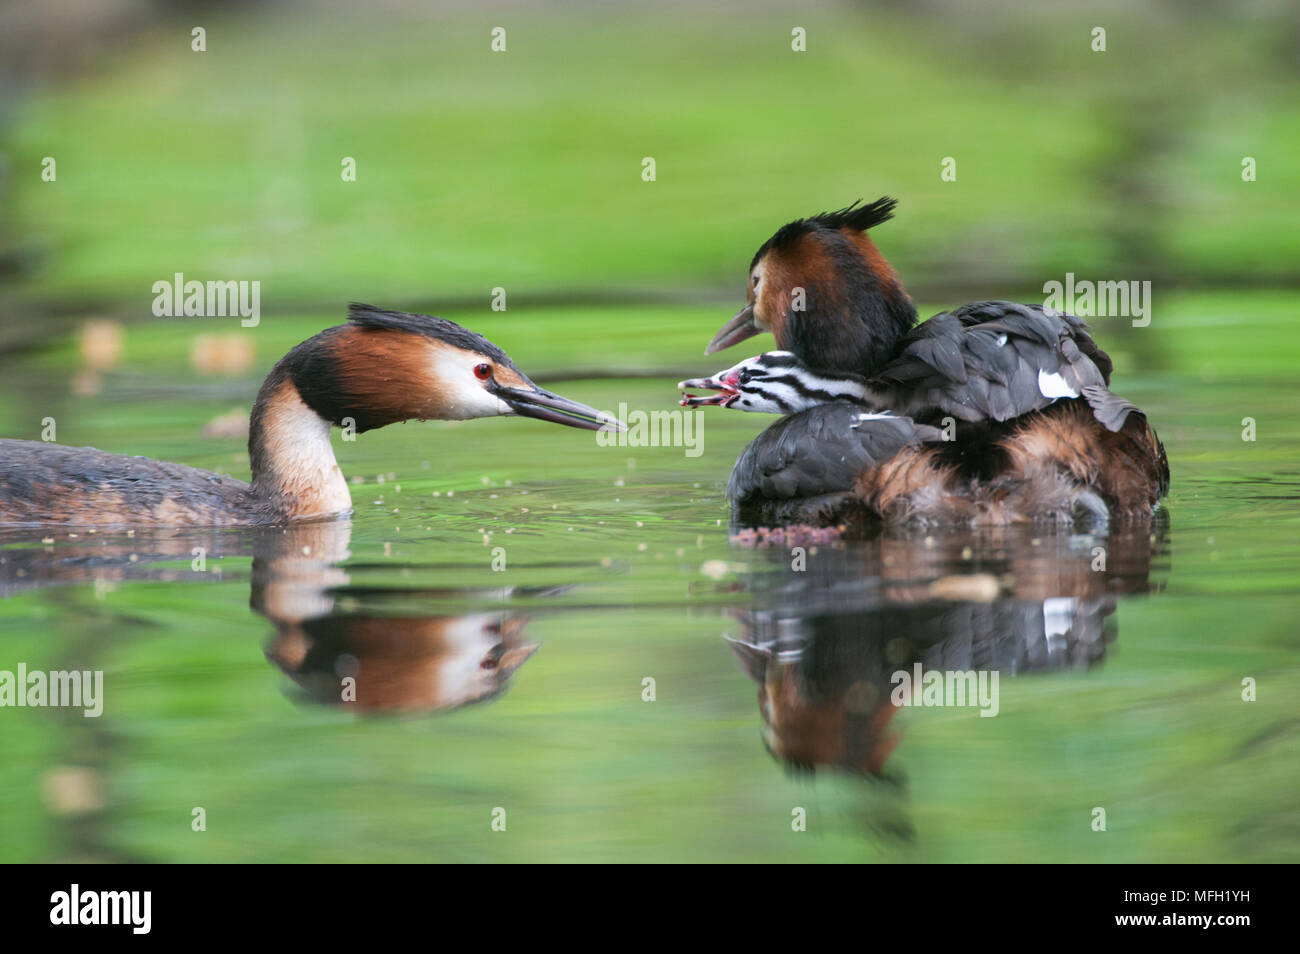 Pair of Great Crested Grebe, (Podiceps cristatus), with parent feeding chick on parent's back, Regent's Park, London, United Kingdom, British Isles - Stock Image